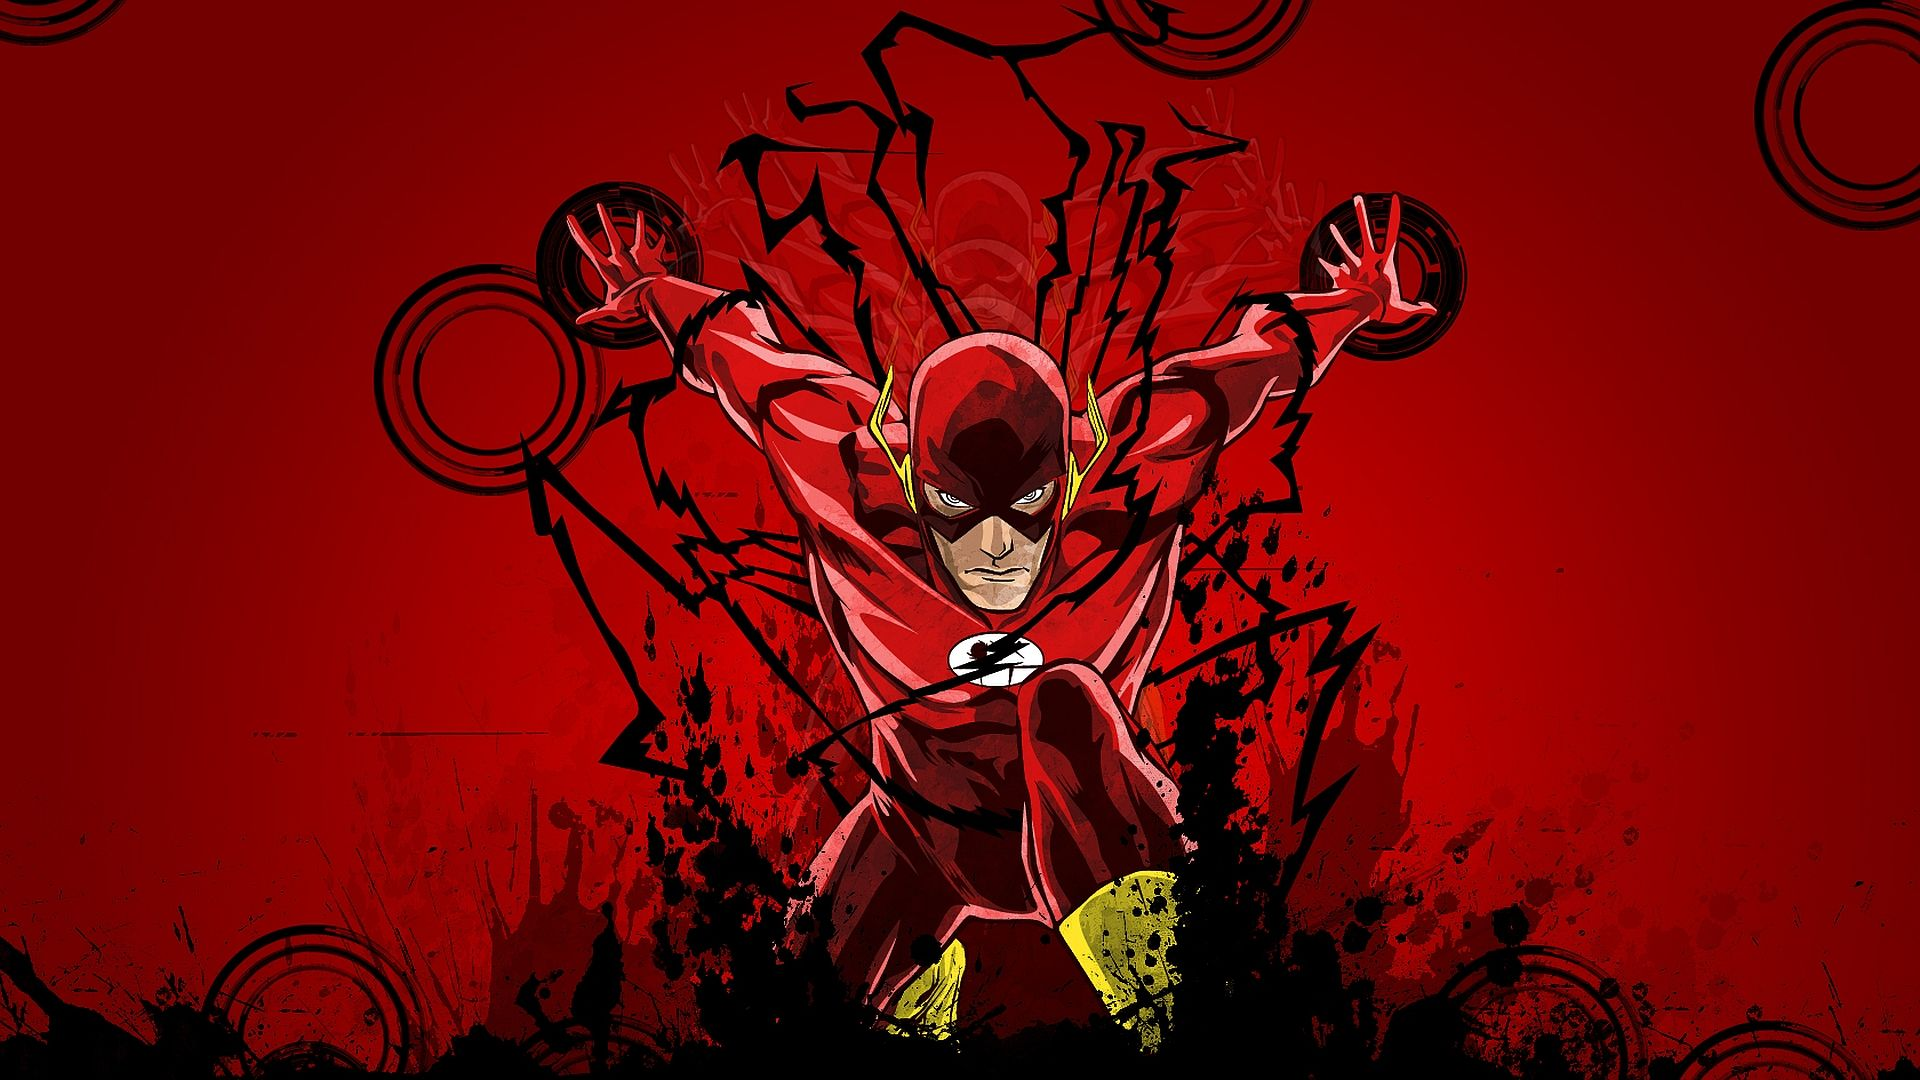 The Flash HD Wallpapers Arte de parede infantil, League